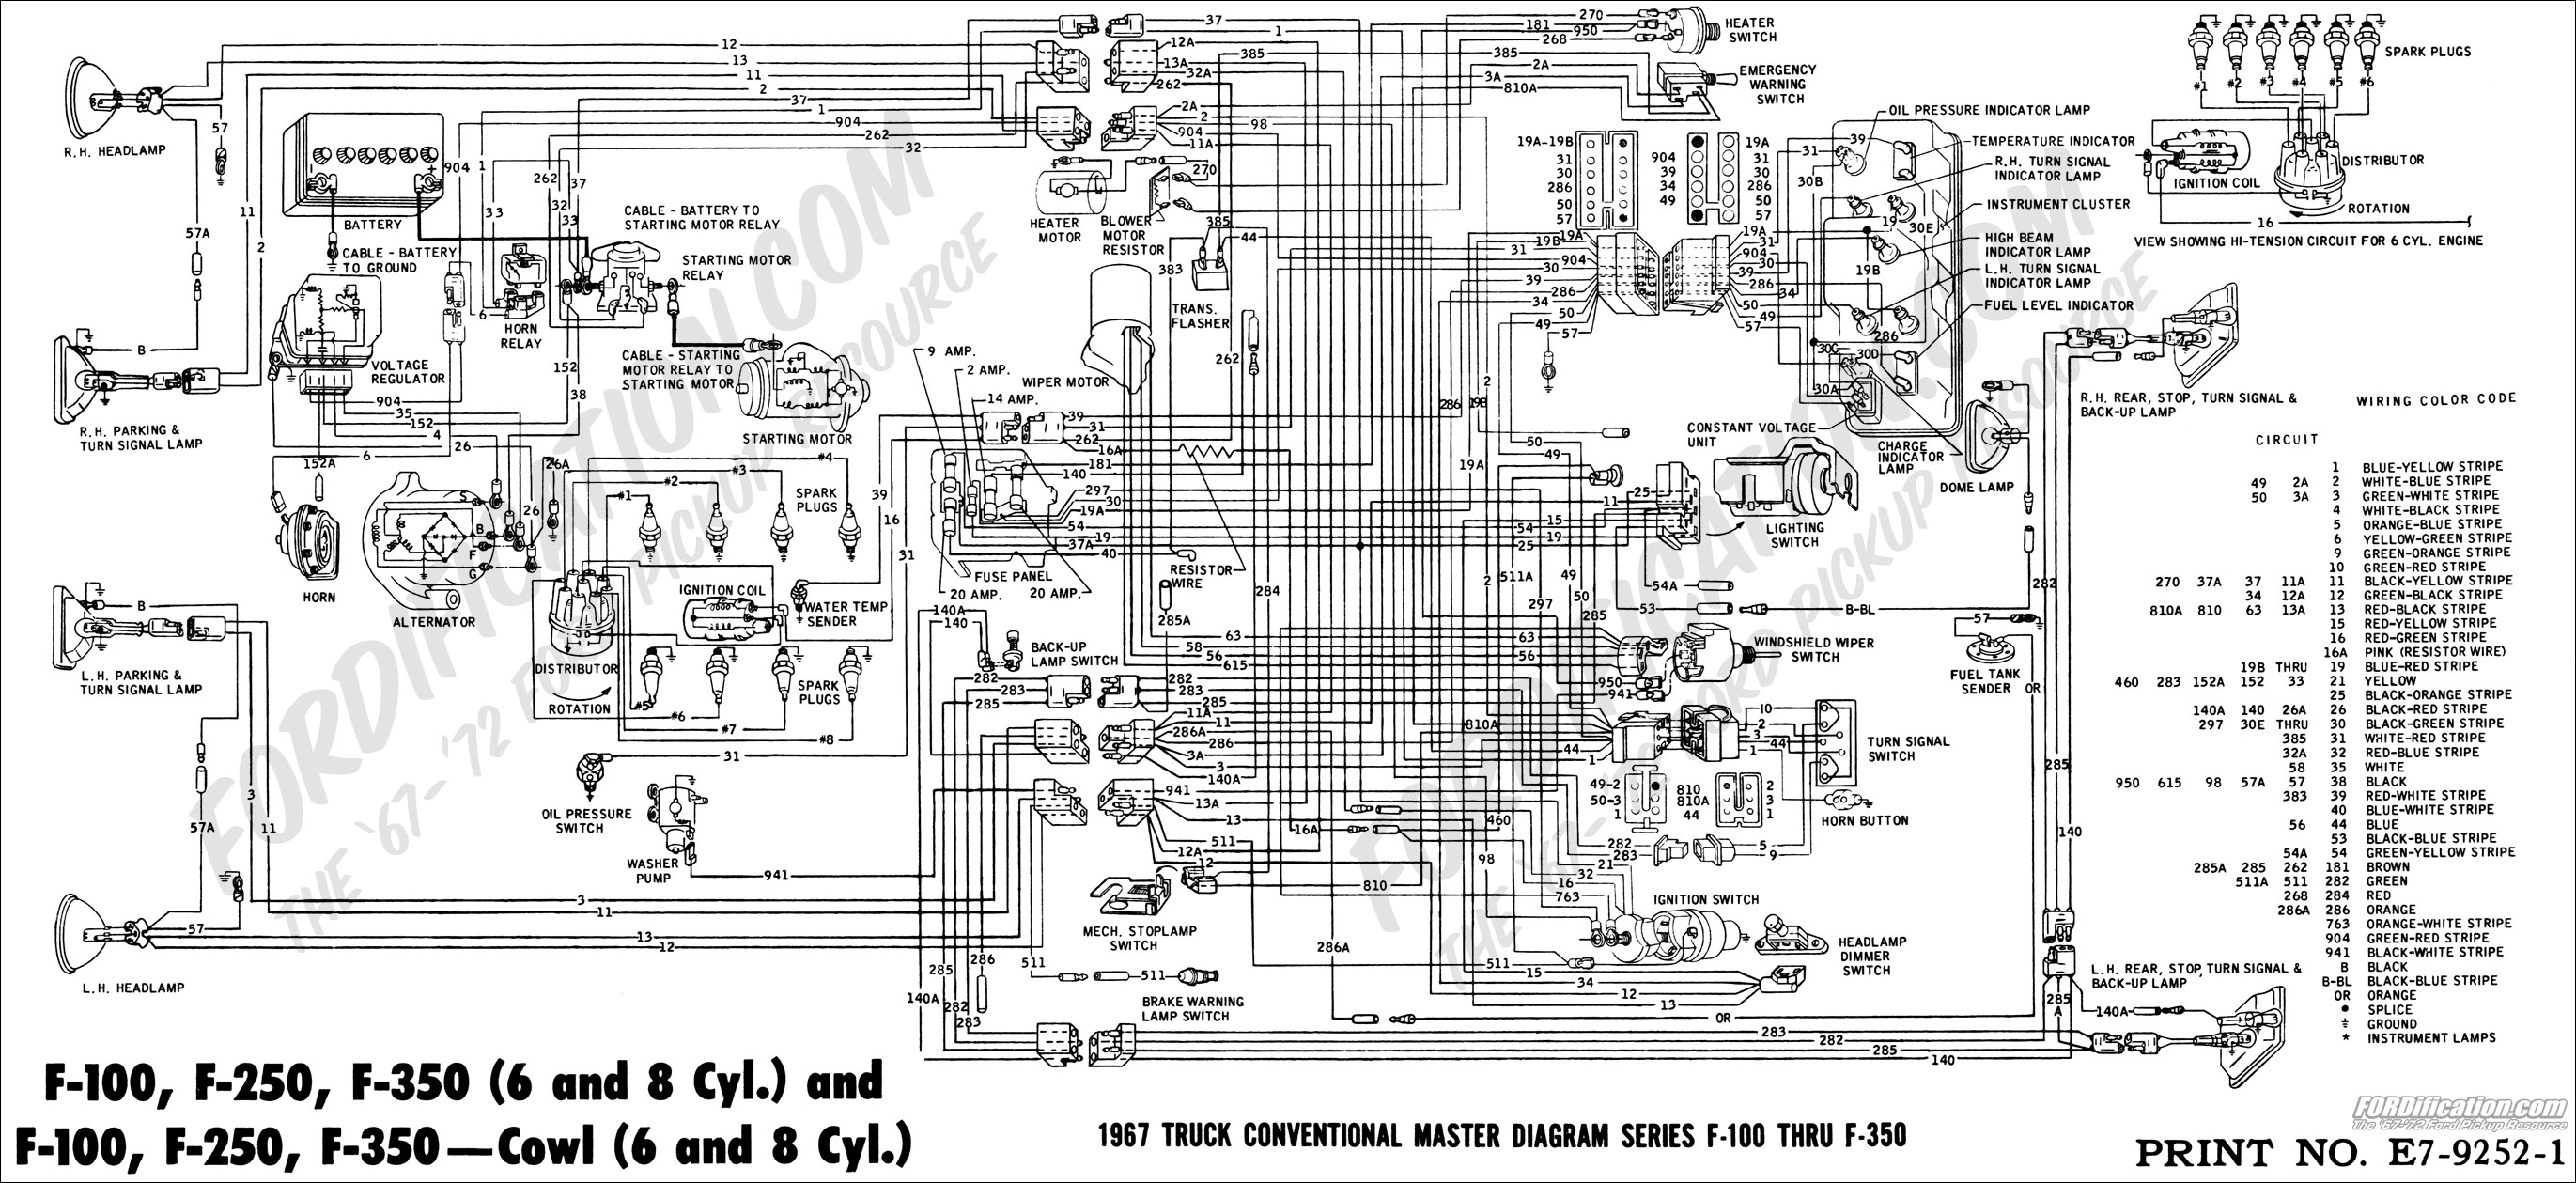 67masterdiagram 1999 ford radio wiring diagram turcolea com 1999 ford f350 radio wiring diagram at edmiracle.co